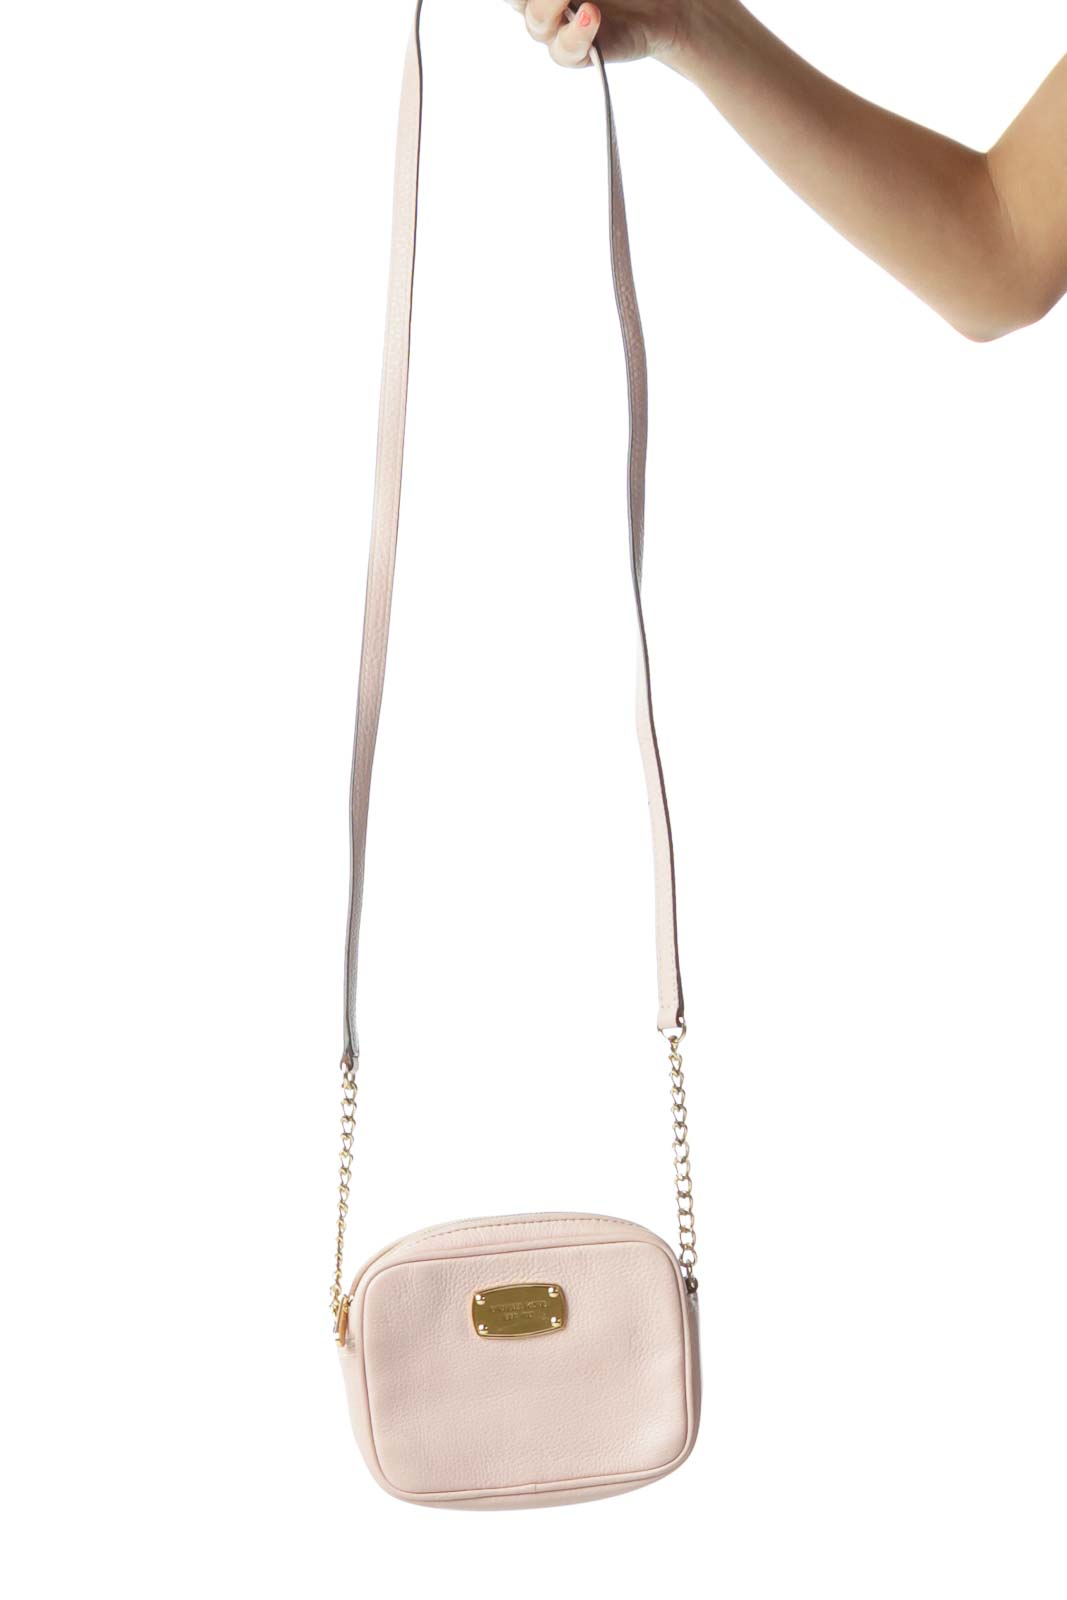 9ed3ae08892 Shop Pink Leather Gold Chain Crossbody Bag clothing and handbags at ...